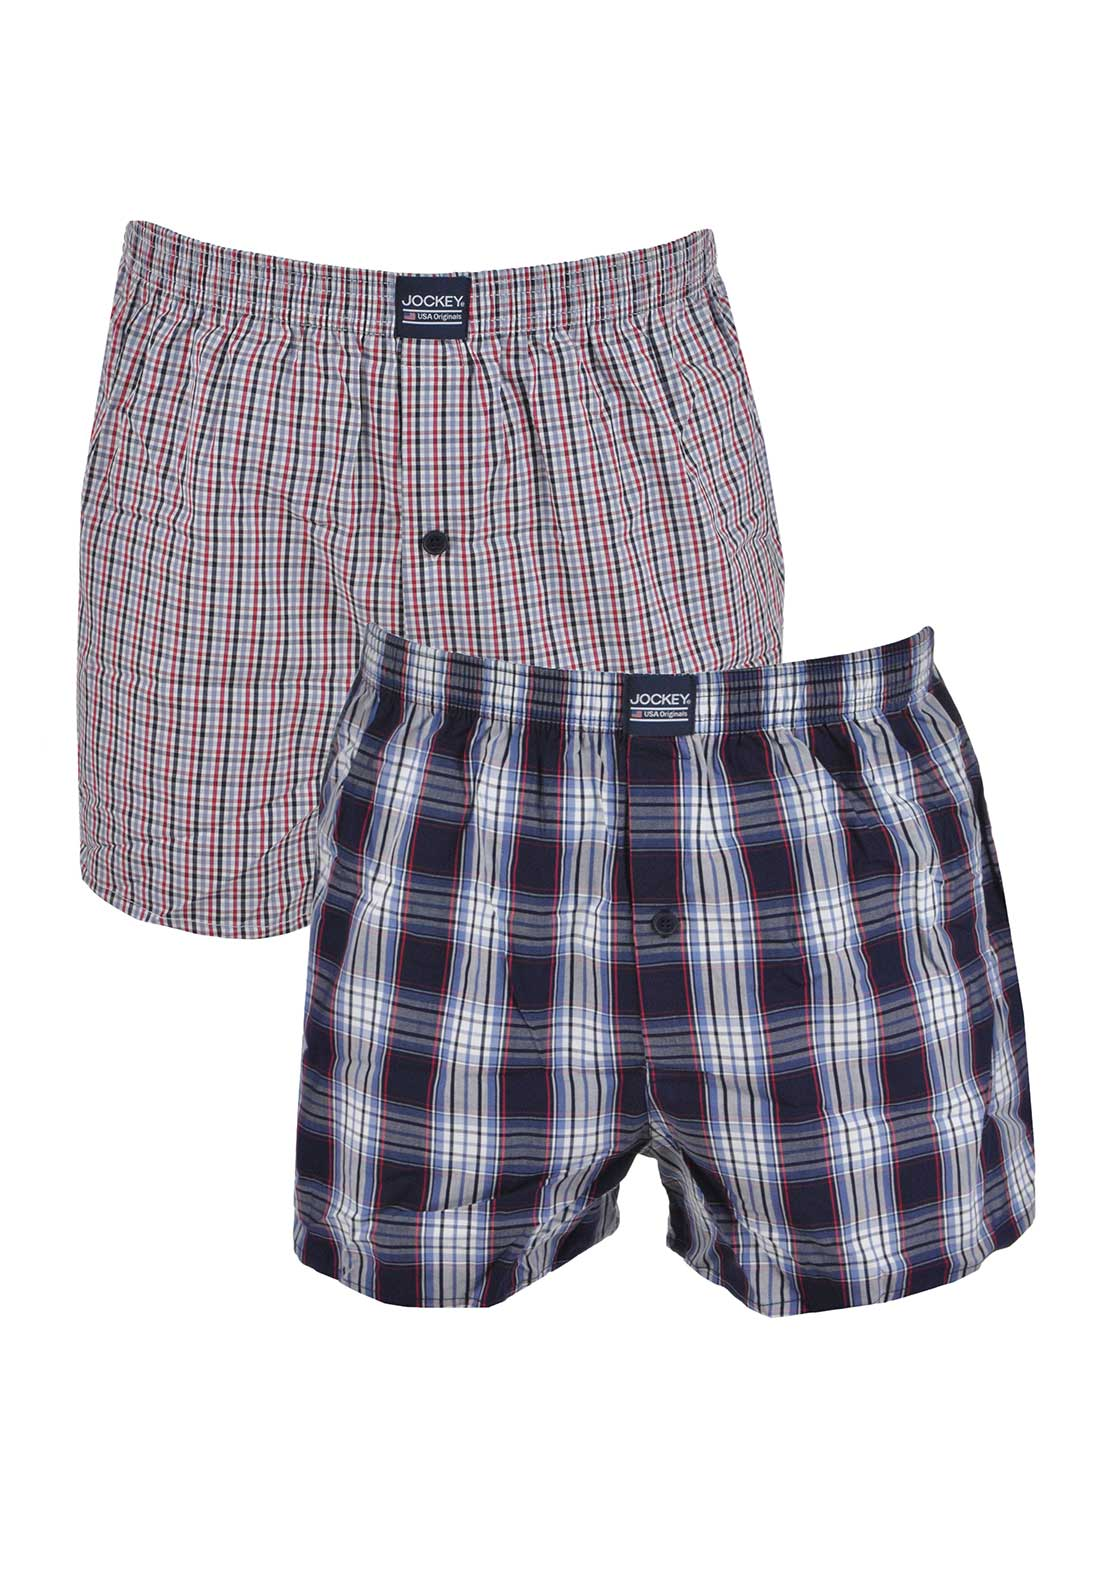 Jockey Mens 2 Pack Woven Boxer Shorts, Red